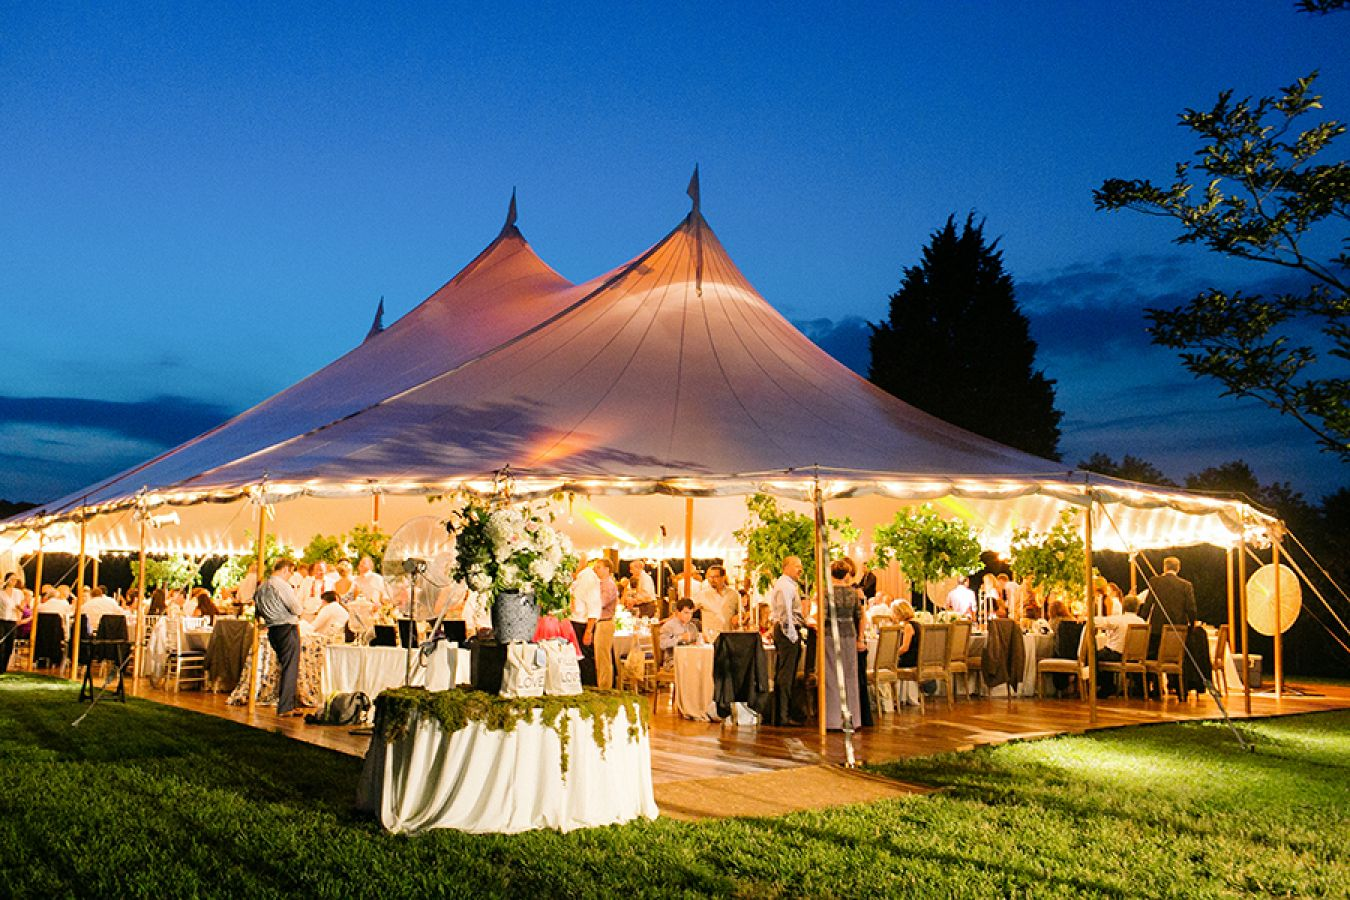 Lighting is important for a wedding tent